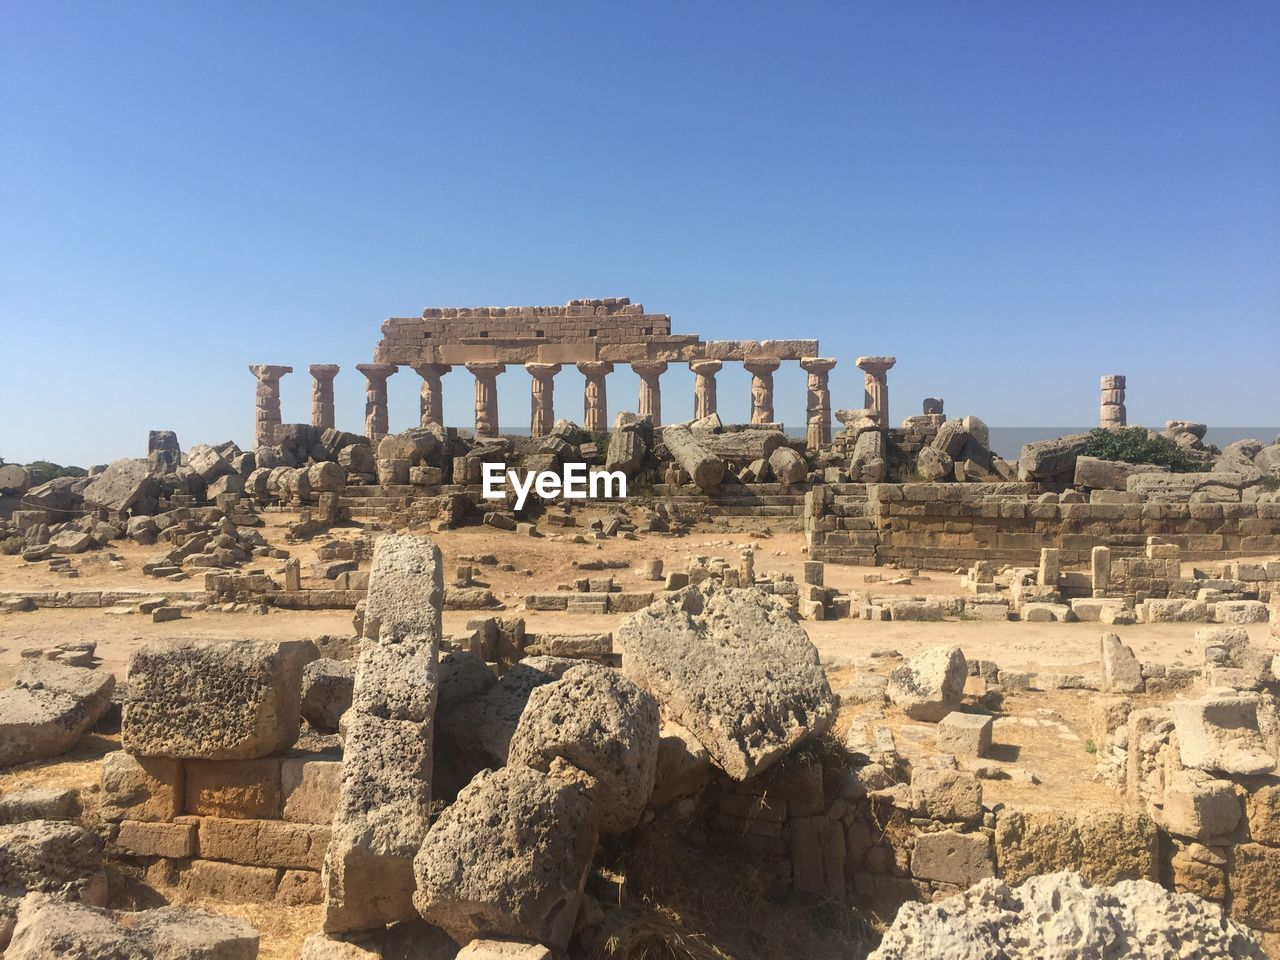 history, the past, ancient, sky, architecture, old ruin, built structure, clear sky, ancient civilization, tourism, travel, travel destinations, nature, day, no people, solid, sunlight, old, copy space, damaged, archaeology, architectural column, ruined, outdoors, deterioration, ancient history